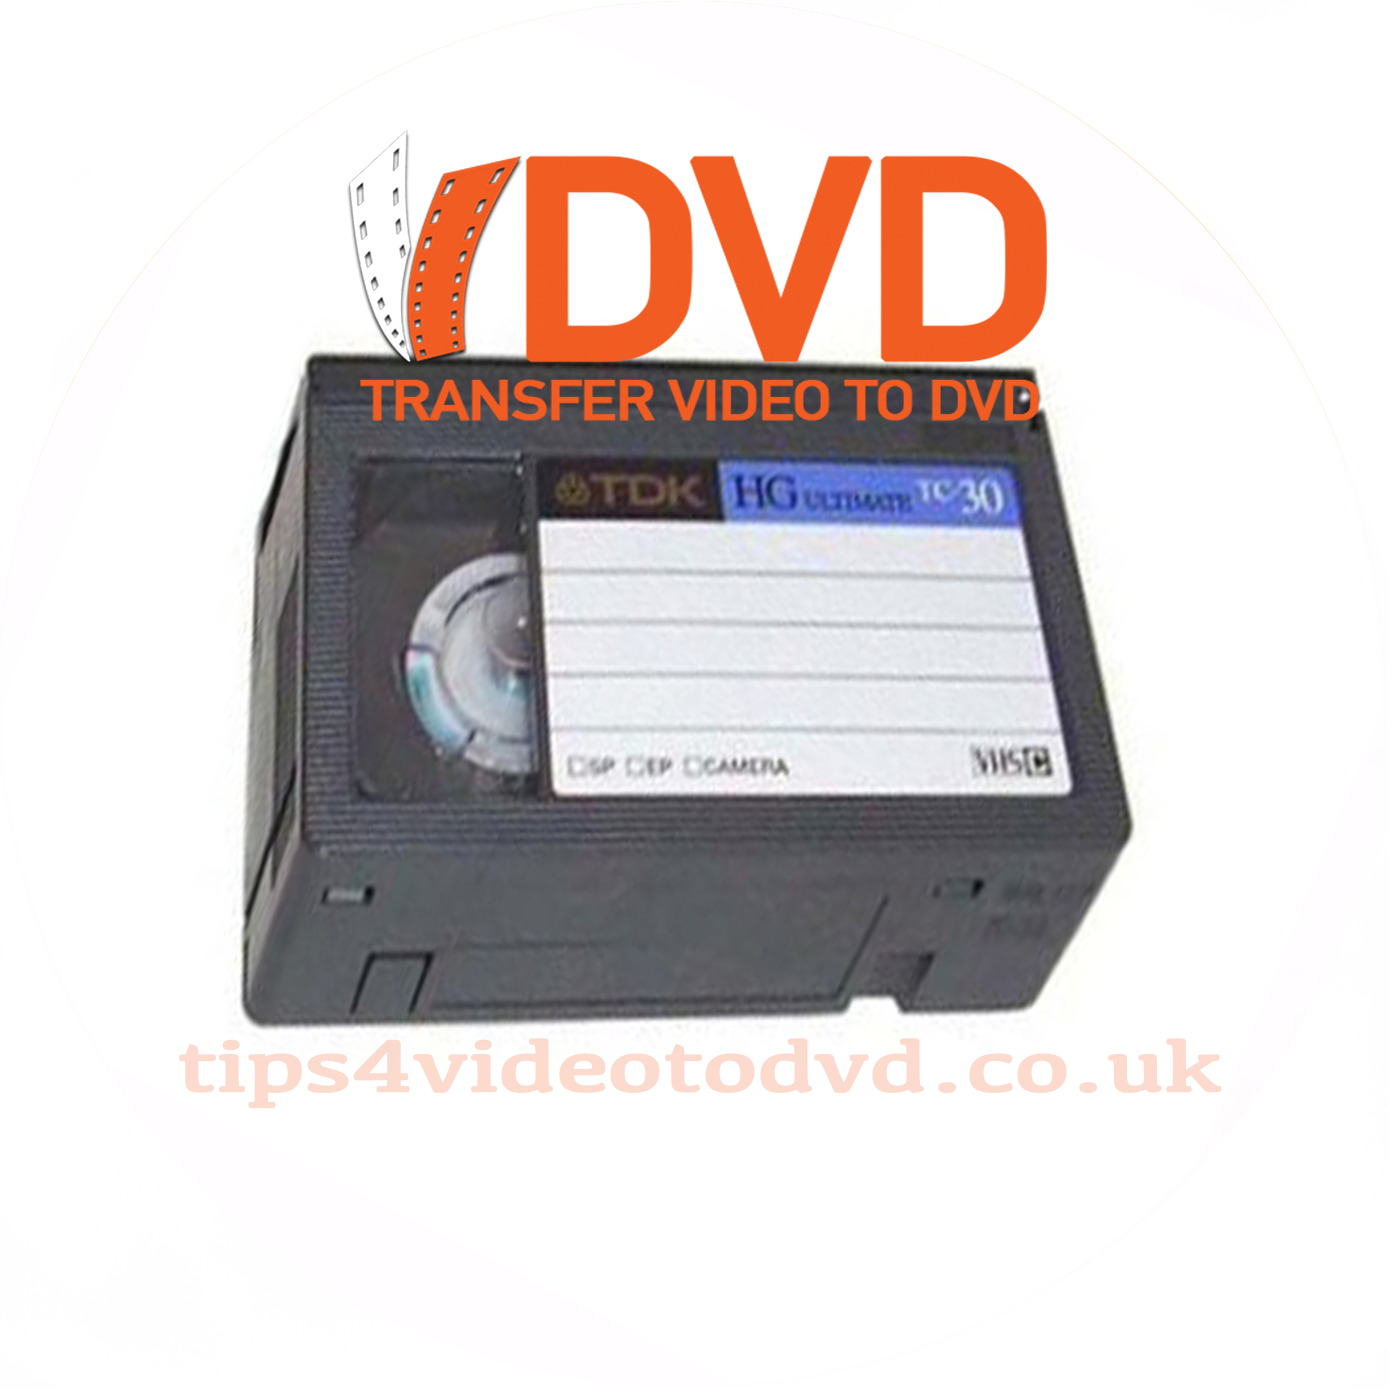 VHSc tape to dvd